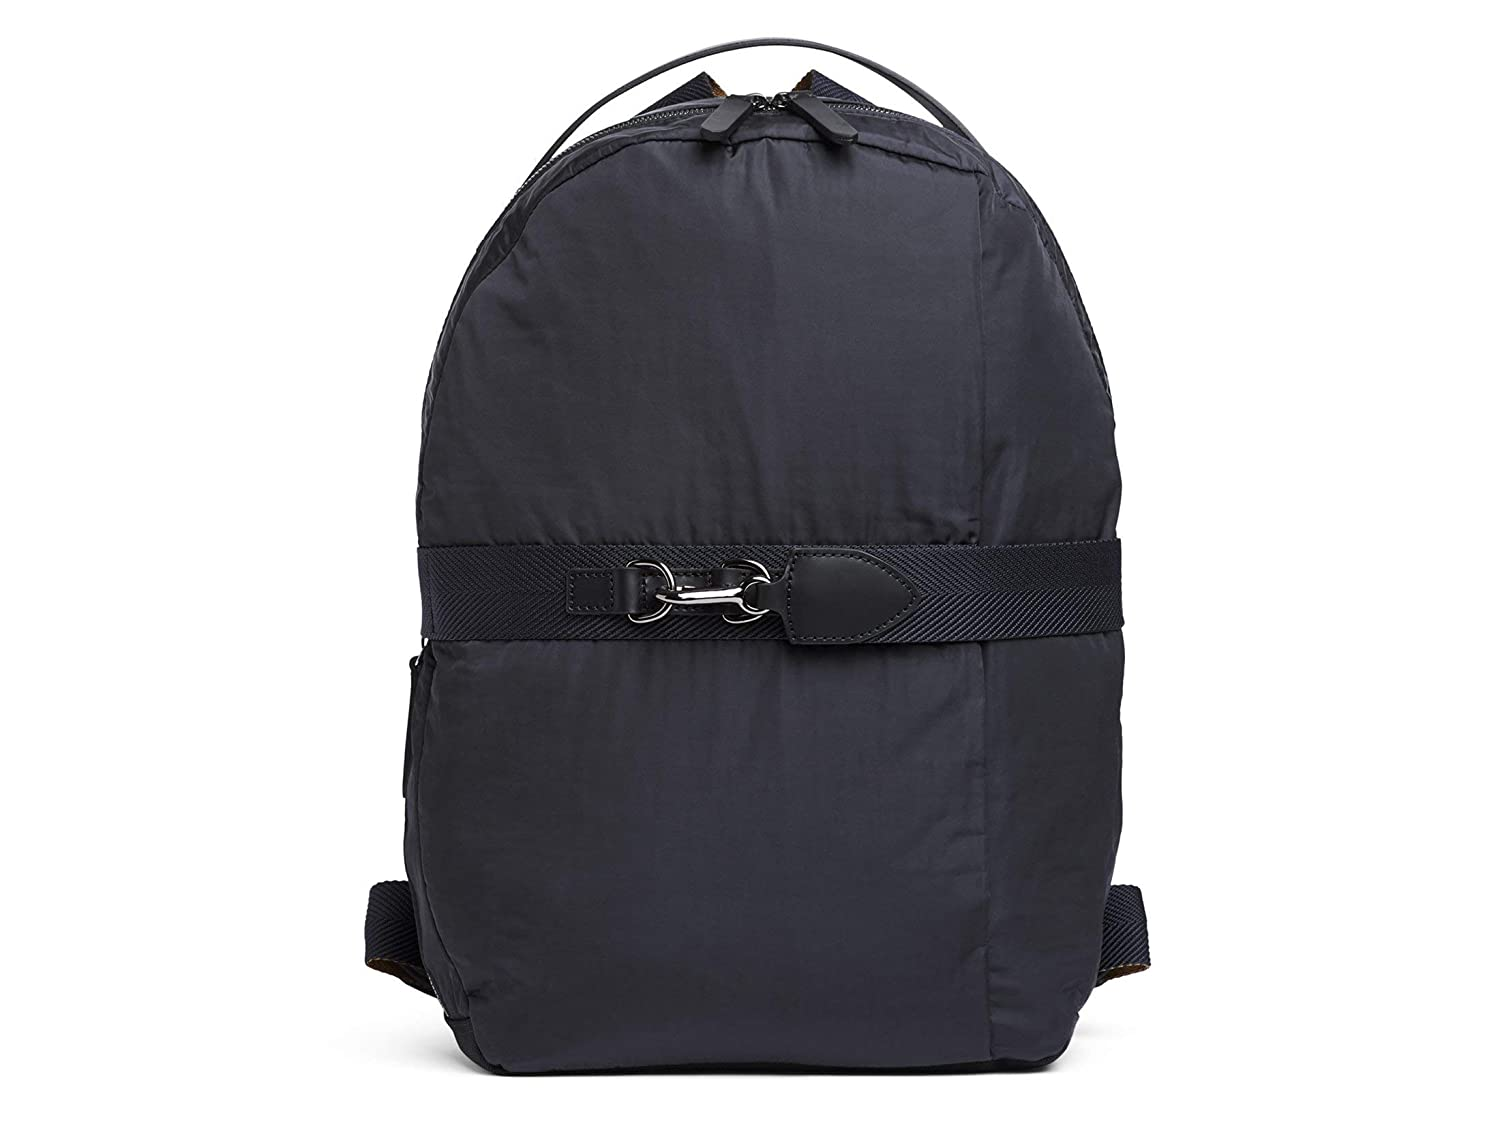 (ミスモ) Mismo Men`s SPRINTER Backpack - MOONLIGHT BLUE メンズスプリンターバックパック - カモジャカード (並行輸入品) One Size MOONLIGHT BLUE & BLACK/BLACK B07H2FQGPS